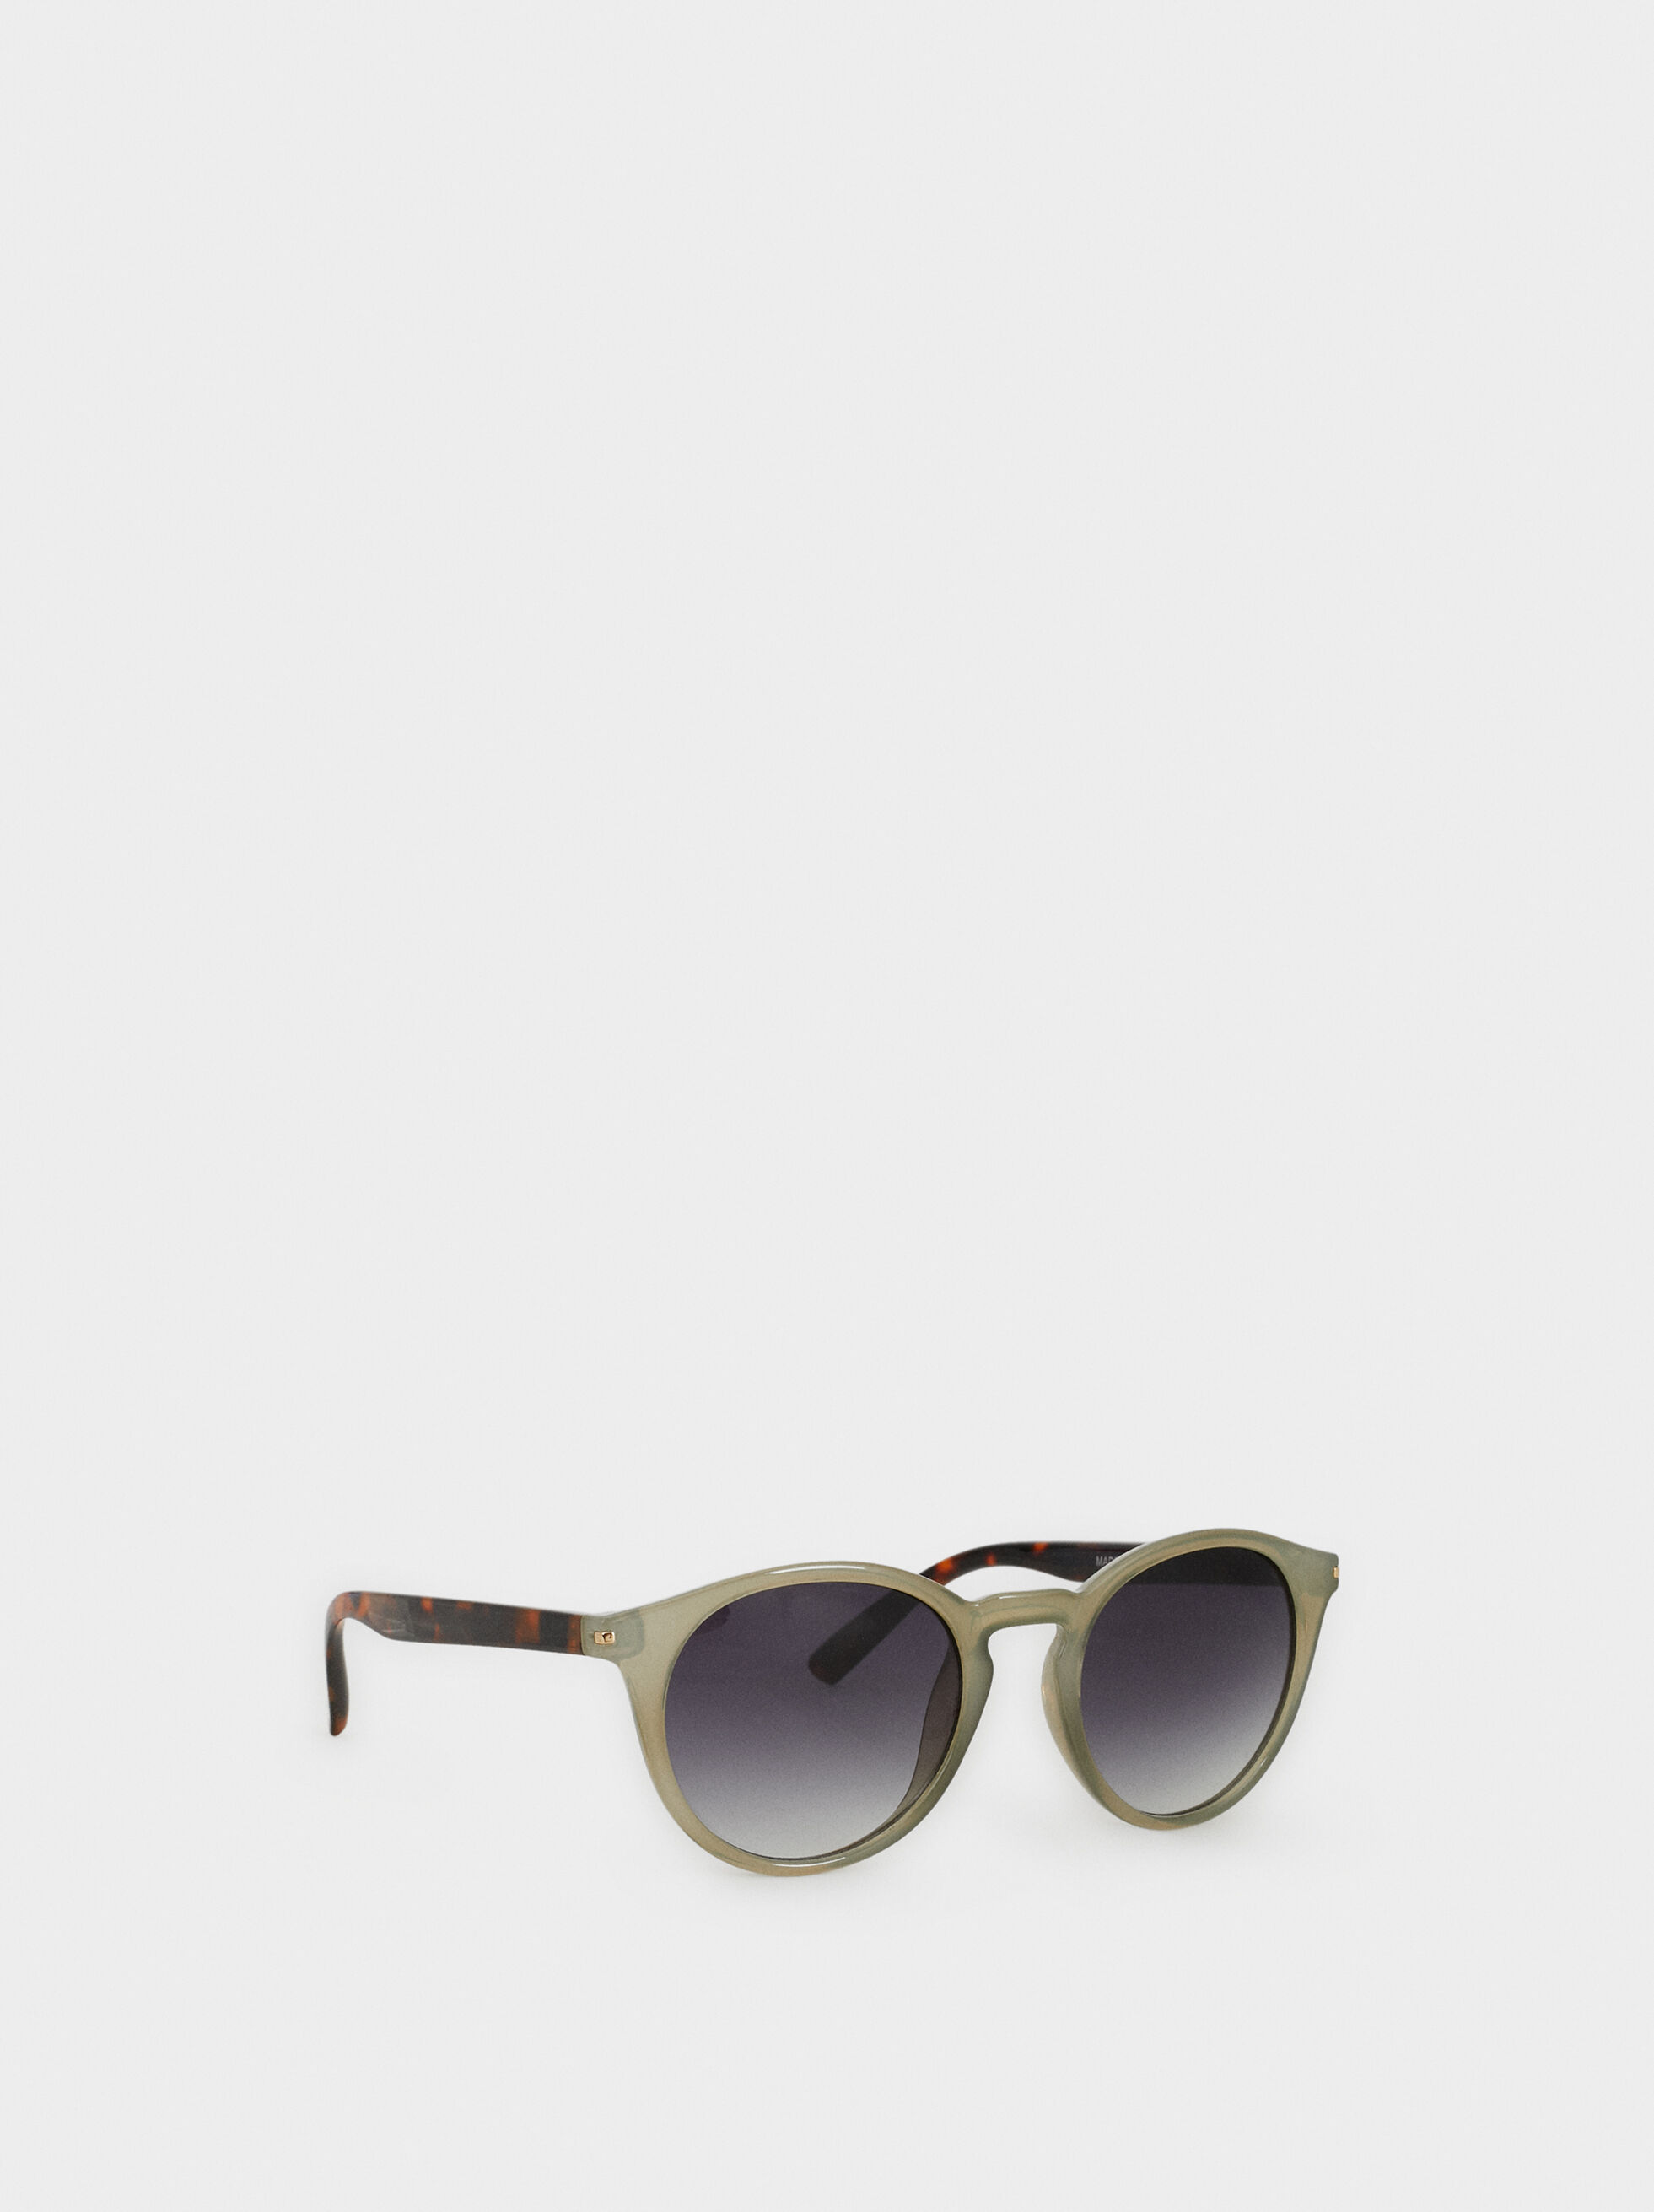 Round Sunglasses, Green, hi-res